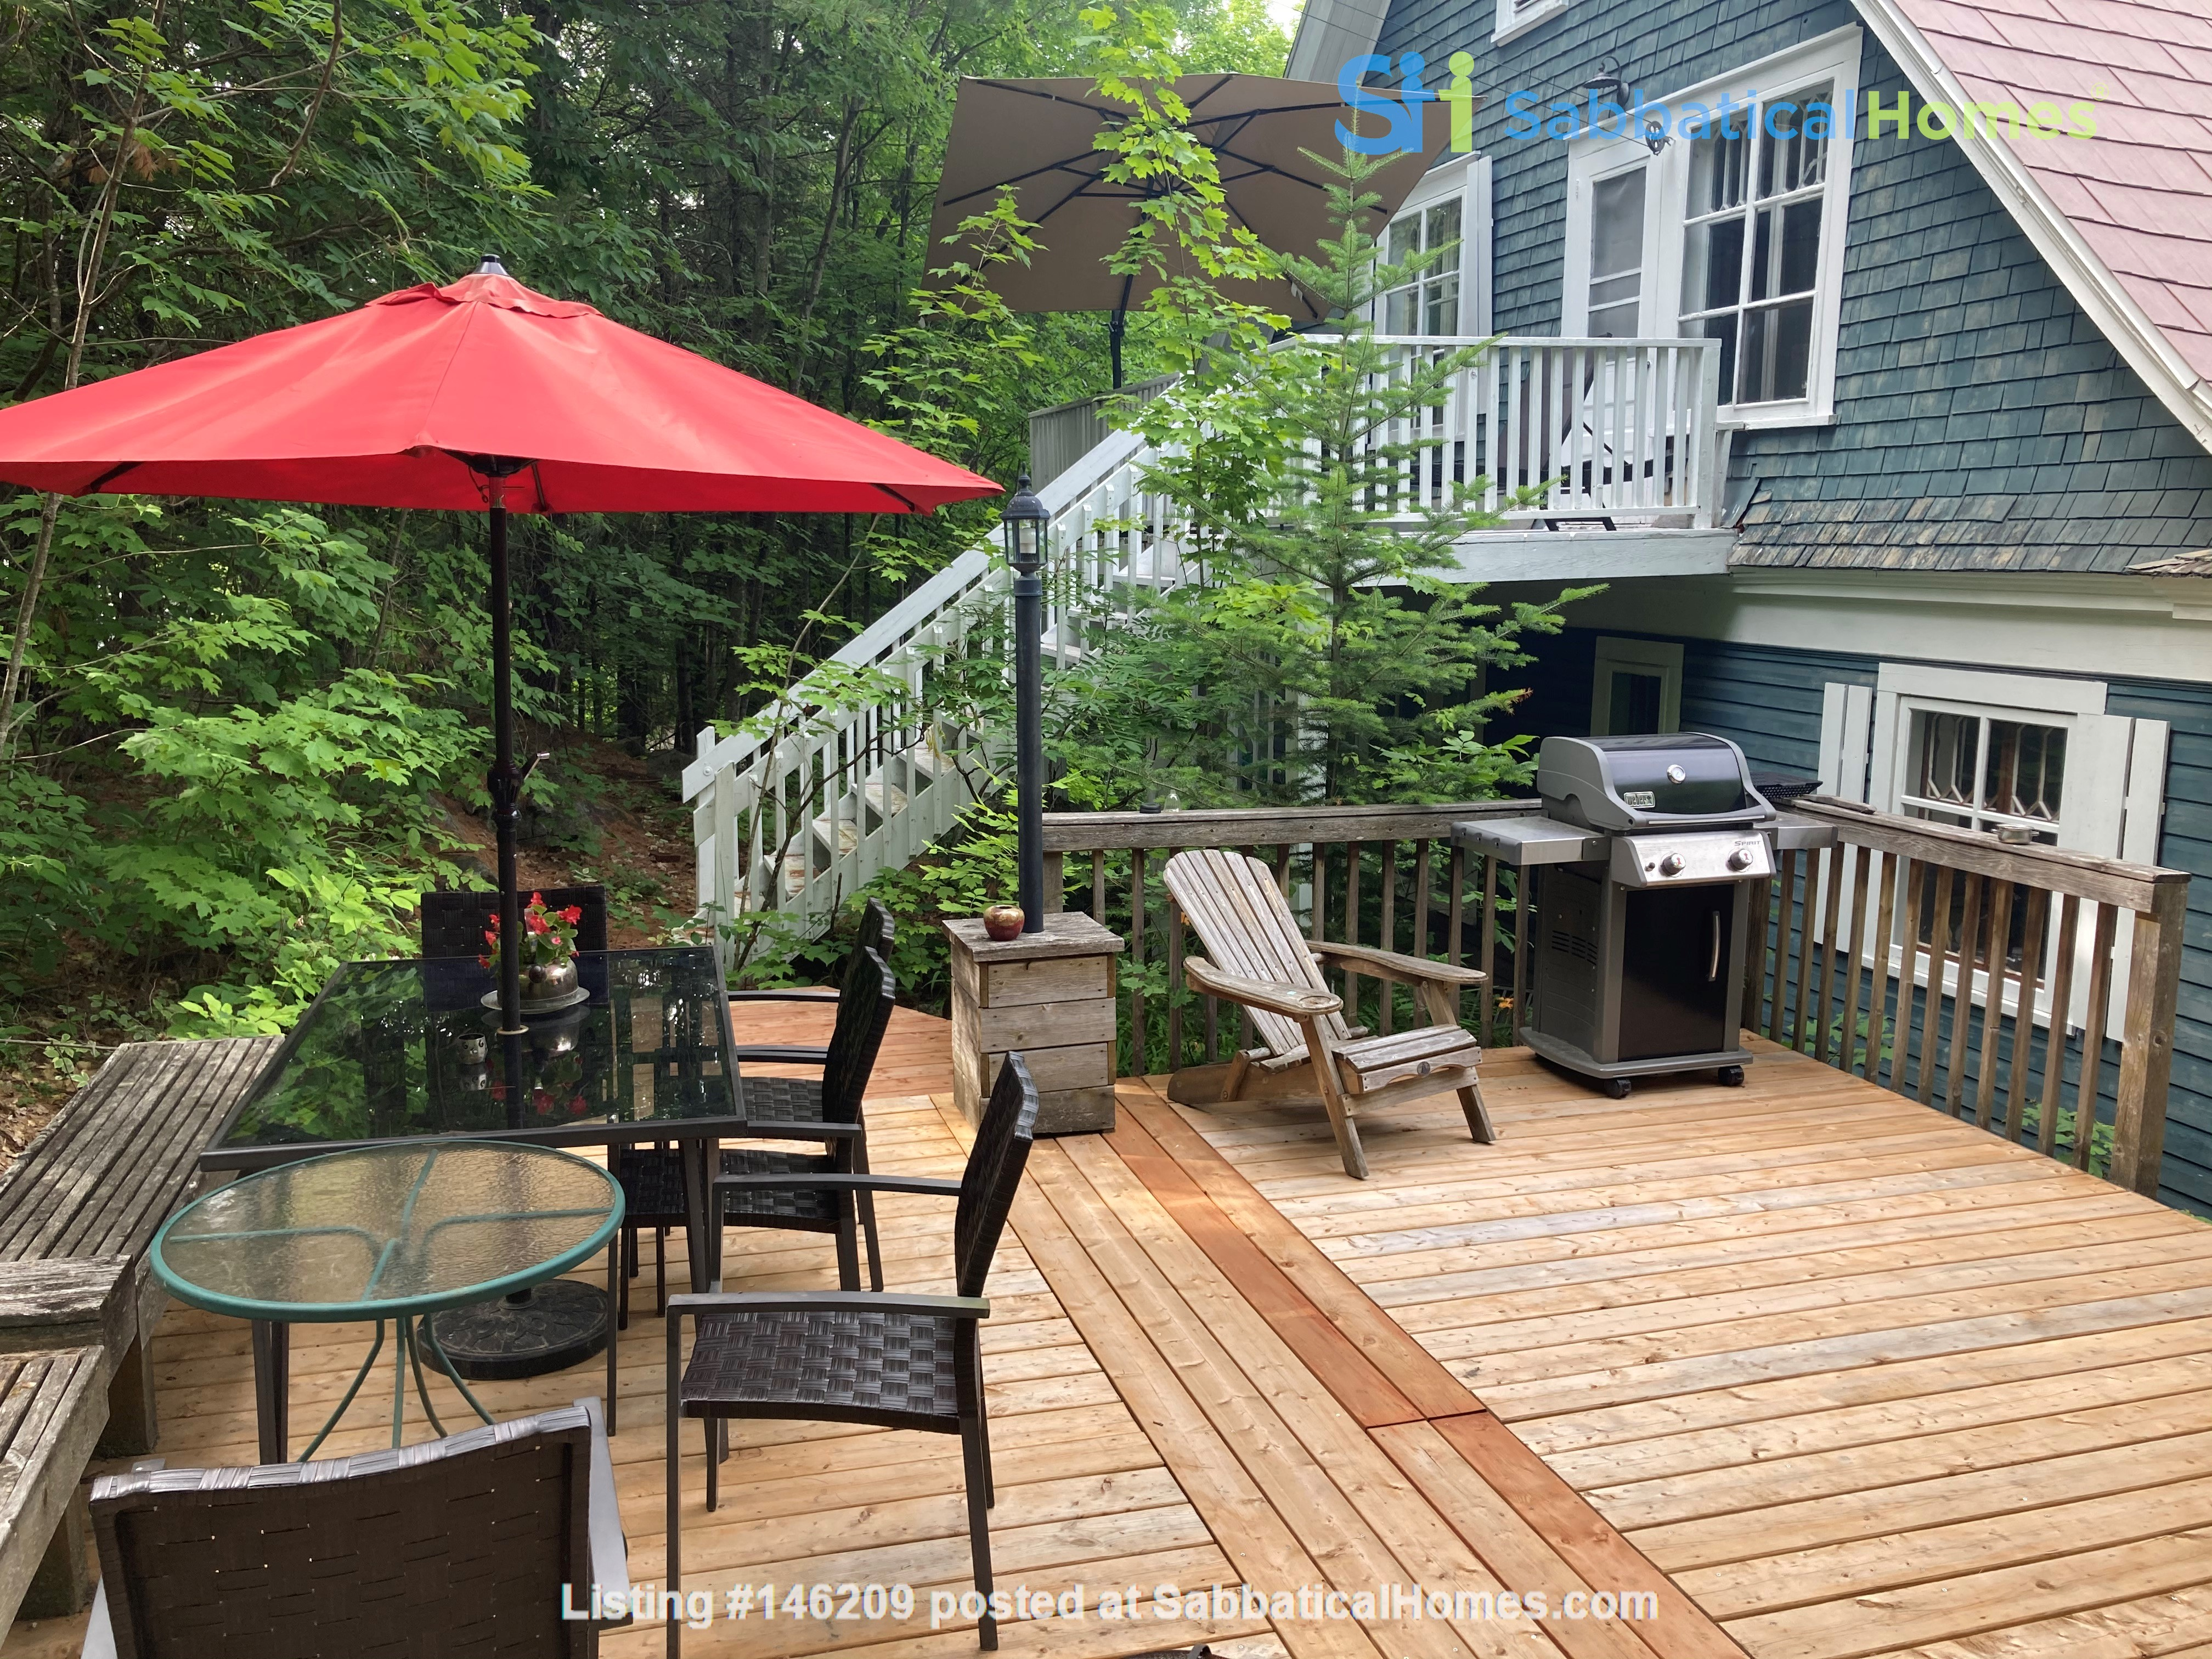 3 BR Historic Arts and Crafts House in Beautiful Wakefield Village Home Rental in Wakefield 9